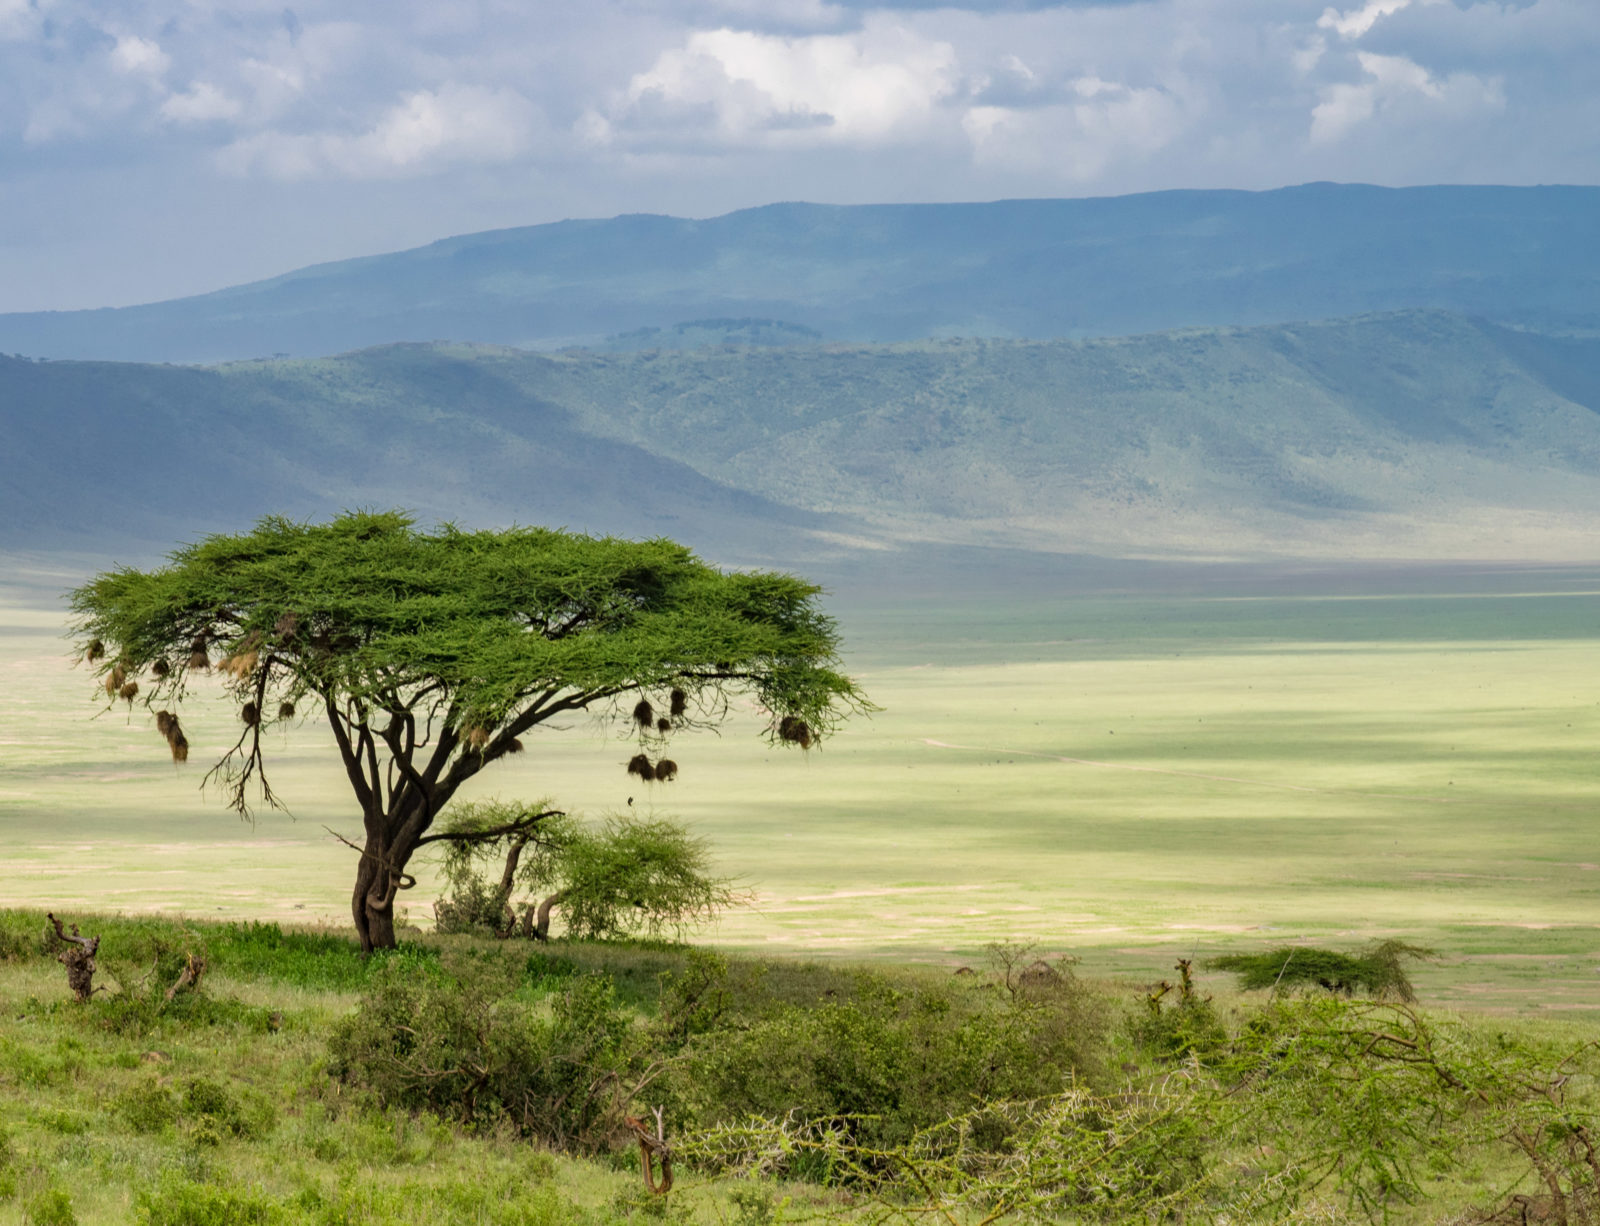 Acacia on the edge of Ngorongoro